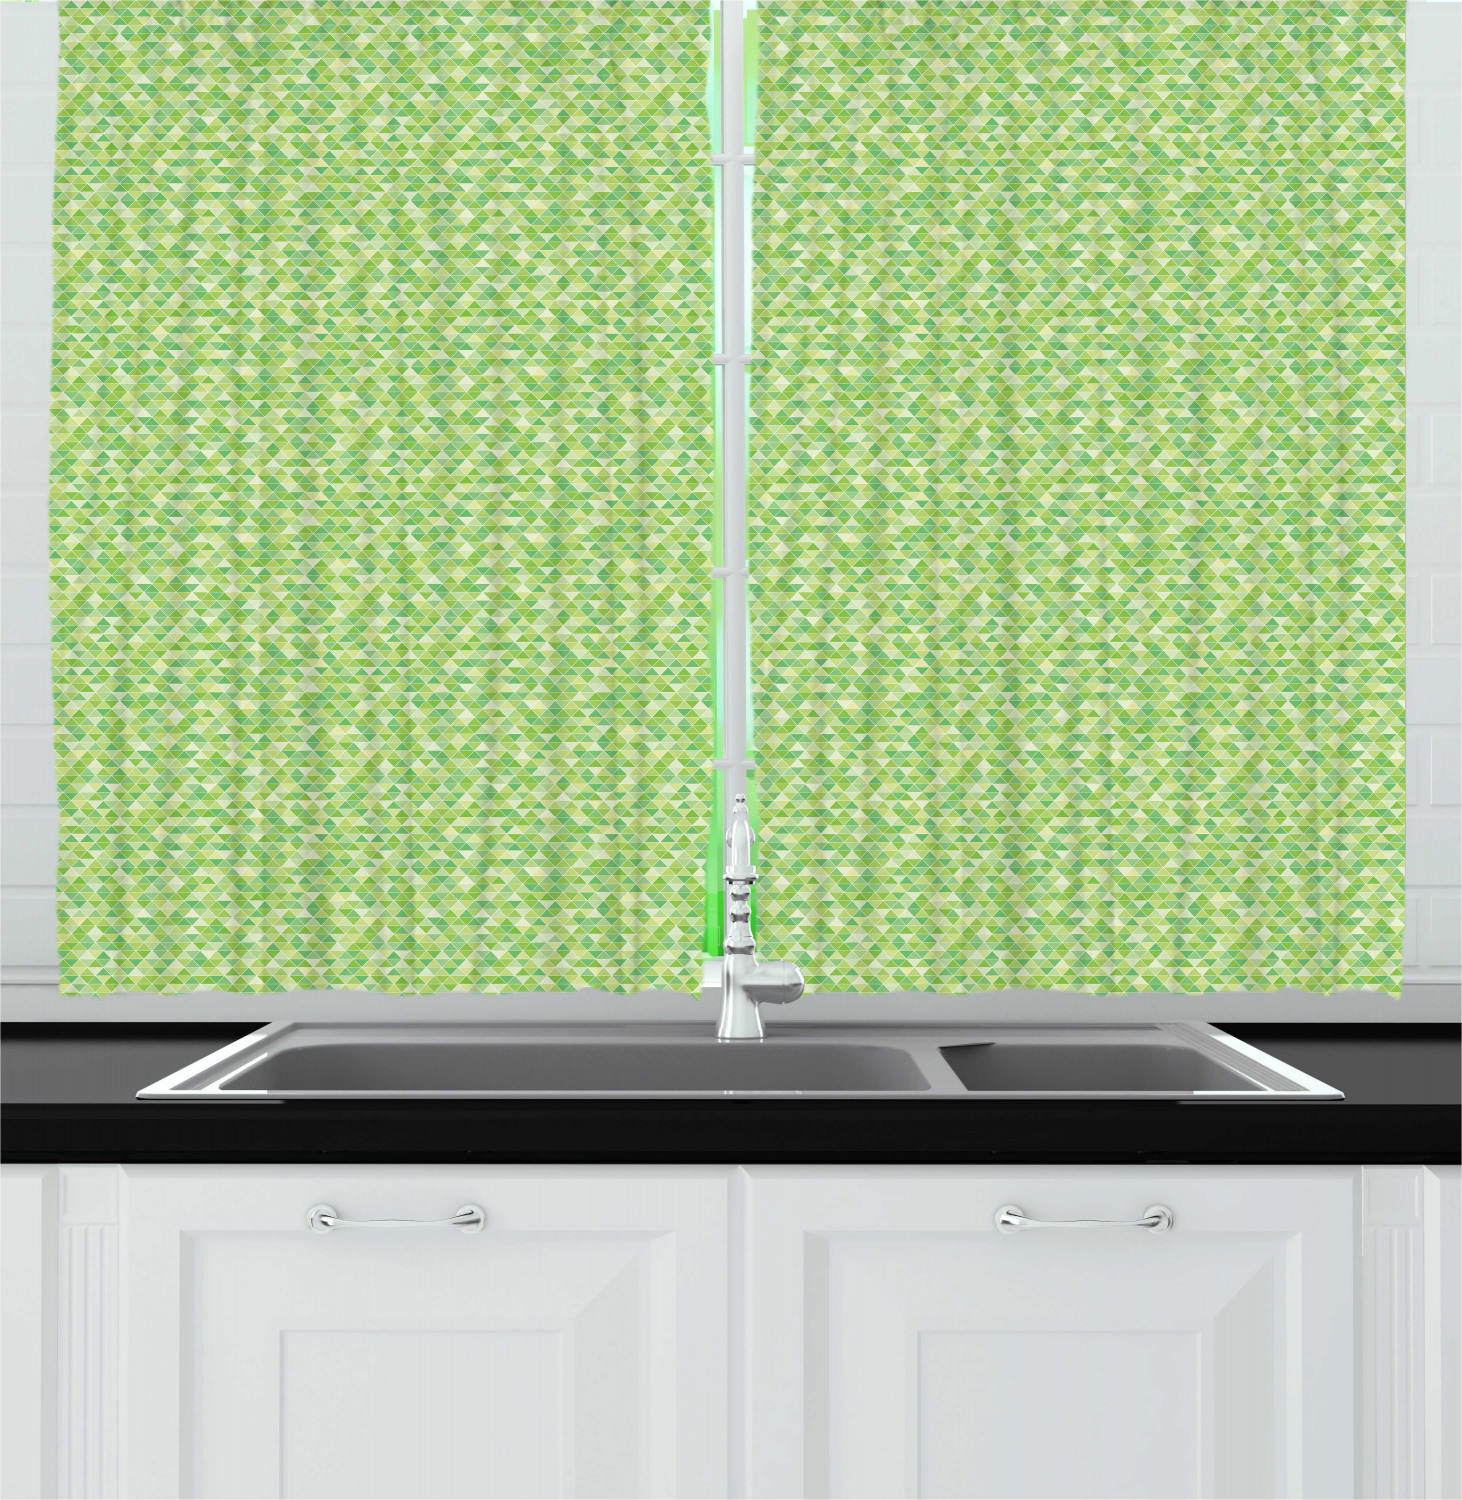 Details about Lime Green Kitchen Curtains 2 Panel Set Window Drapes 55\